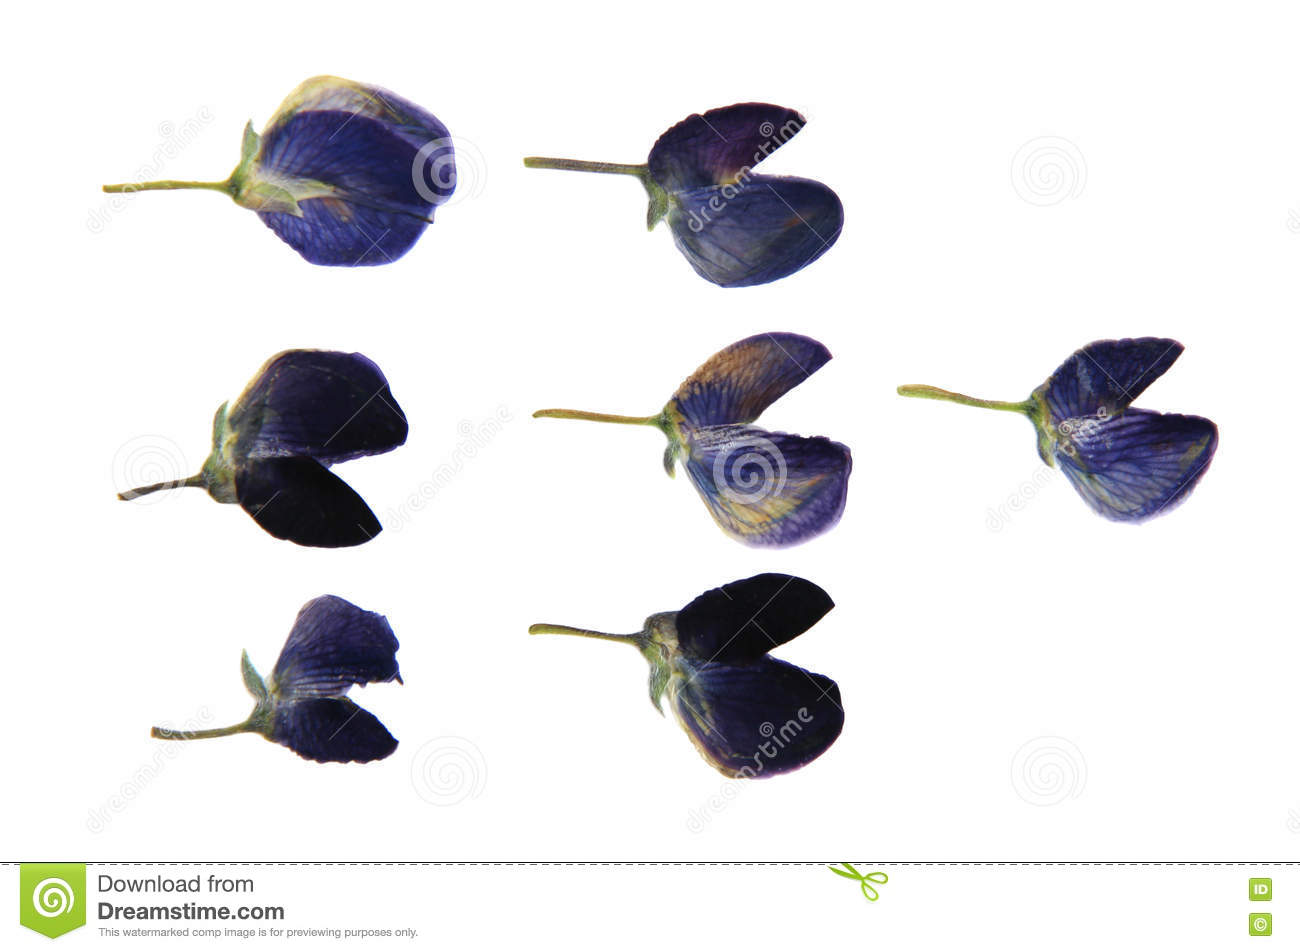 How to scrapbook pressed flowers - Lupine Dark Blue Dry Perspective Delicate Pressed Flowers And P